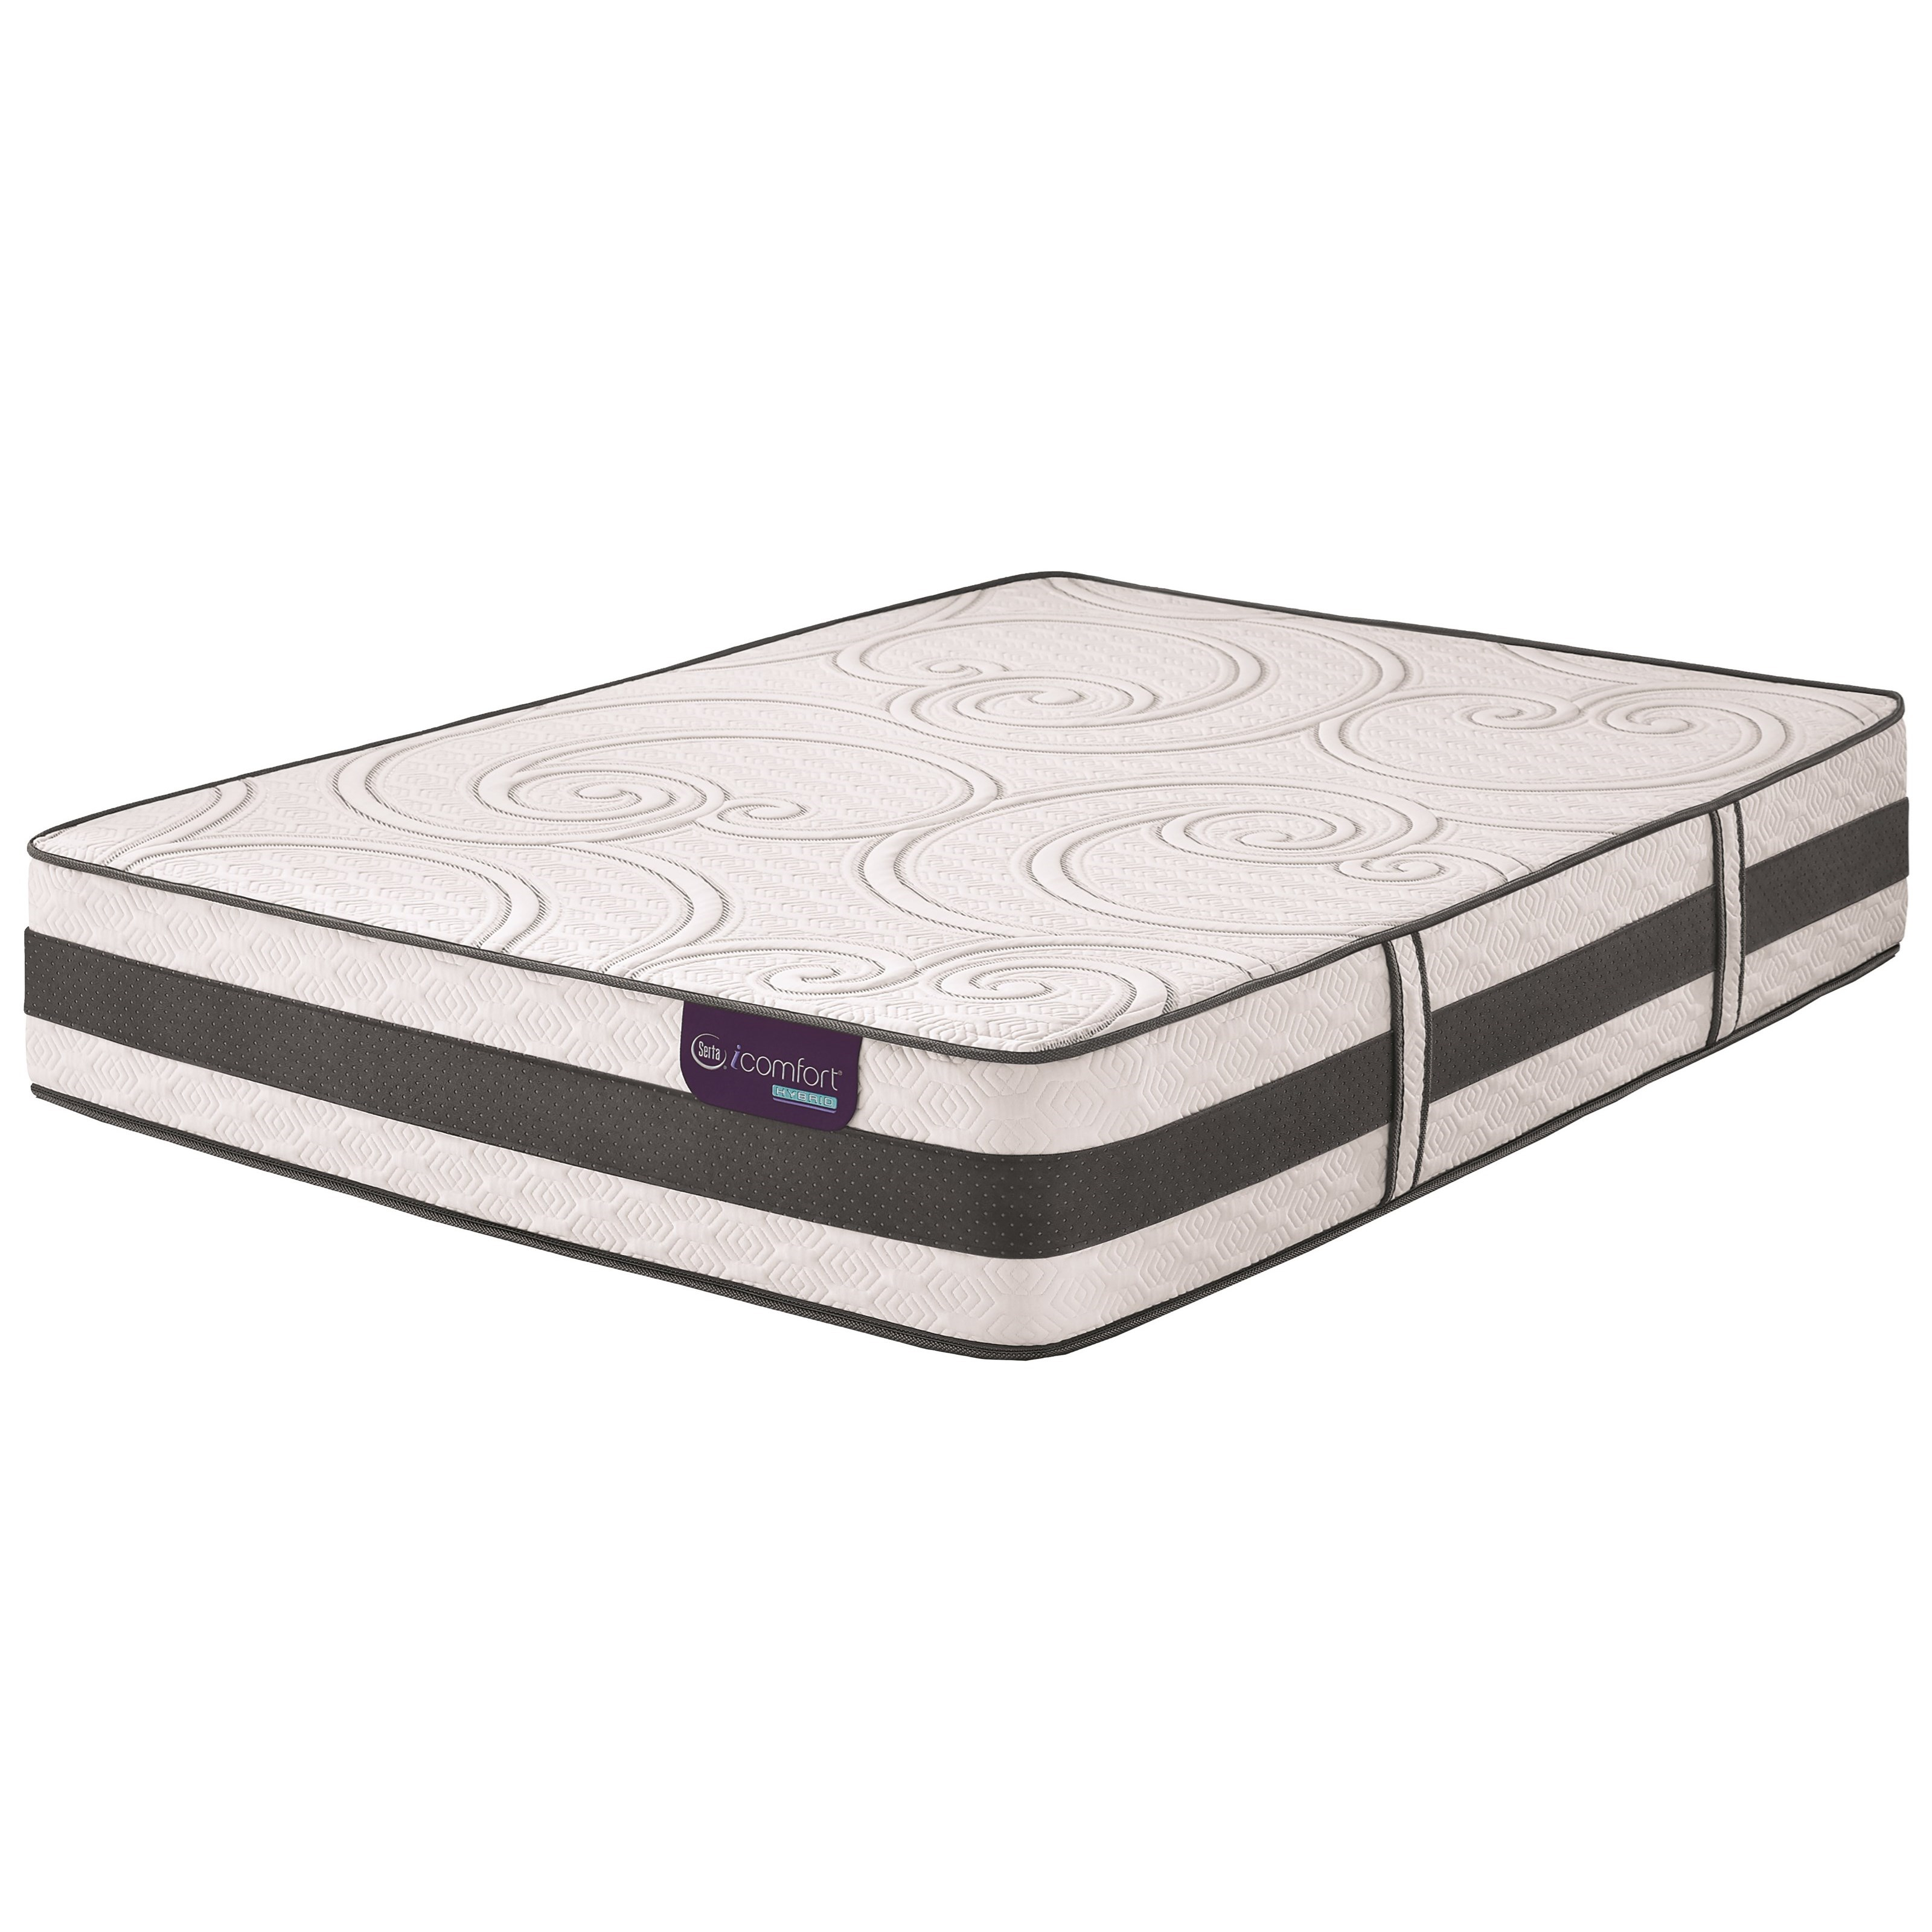 Serta iComfort Hybrid Discoverer Queen Firm Hybrid Smooth Top Mattress - Item Number: DiscovererFirm-Q